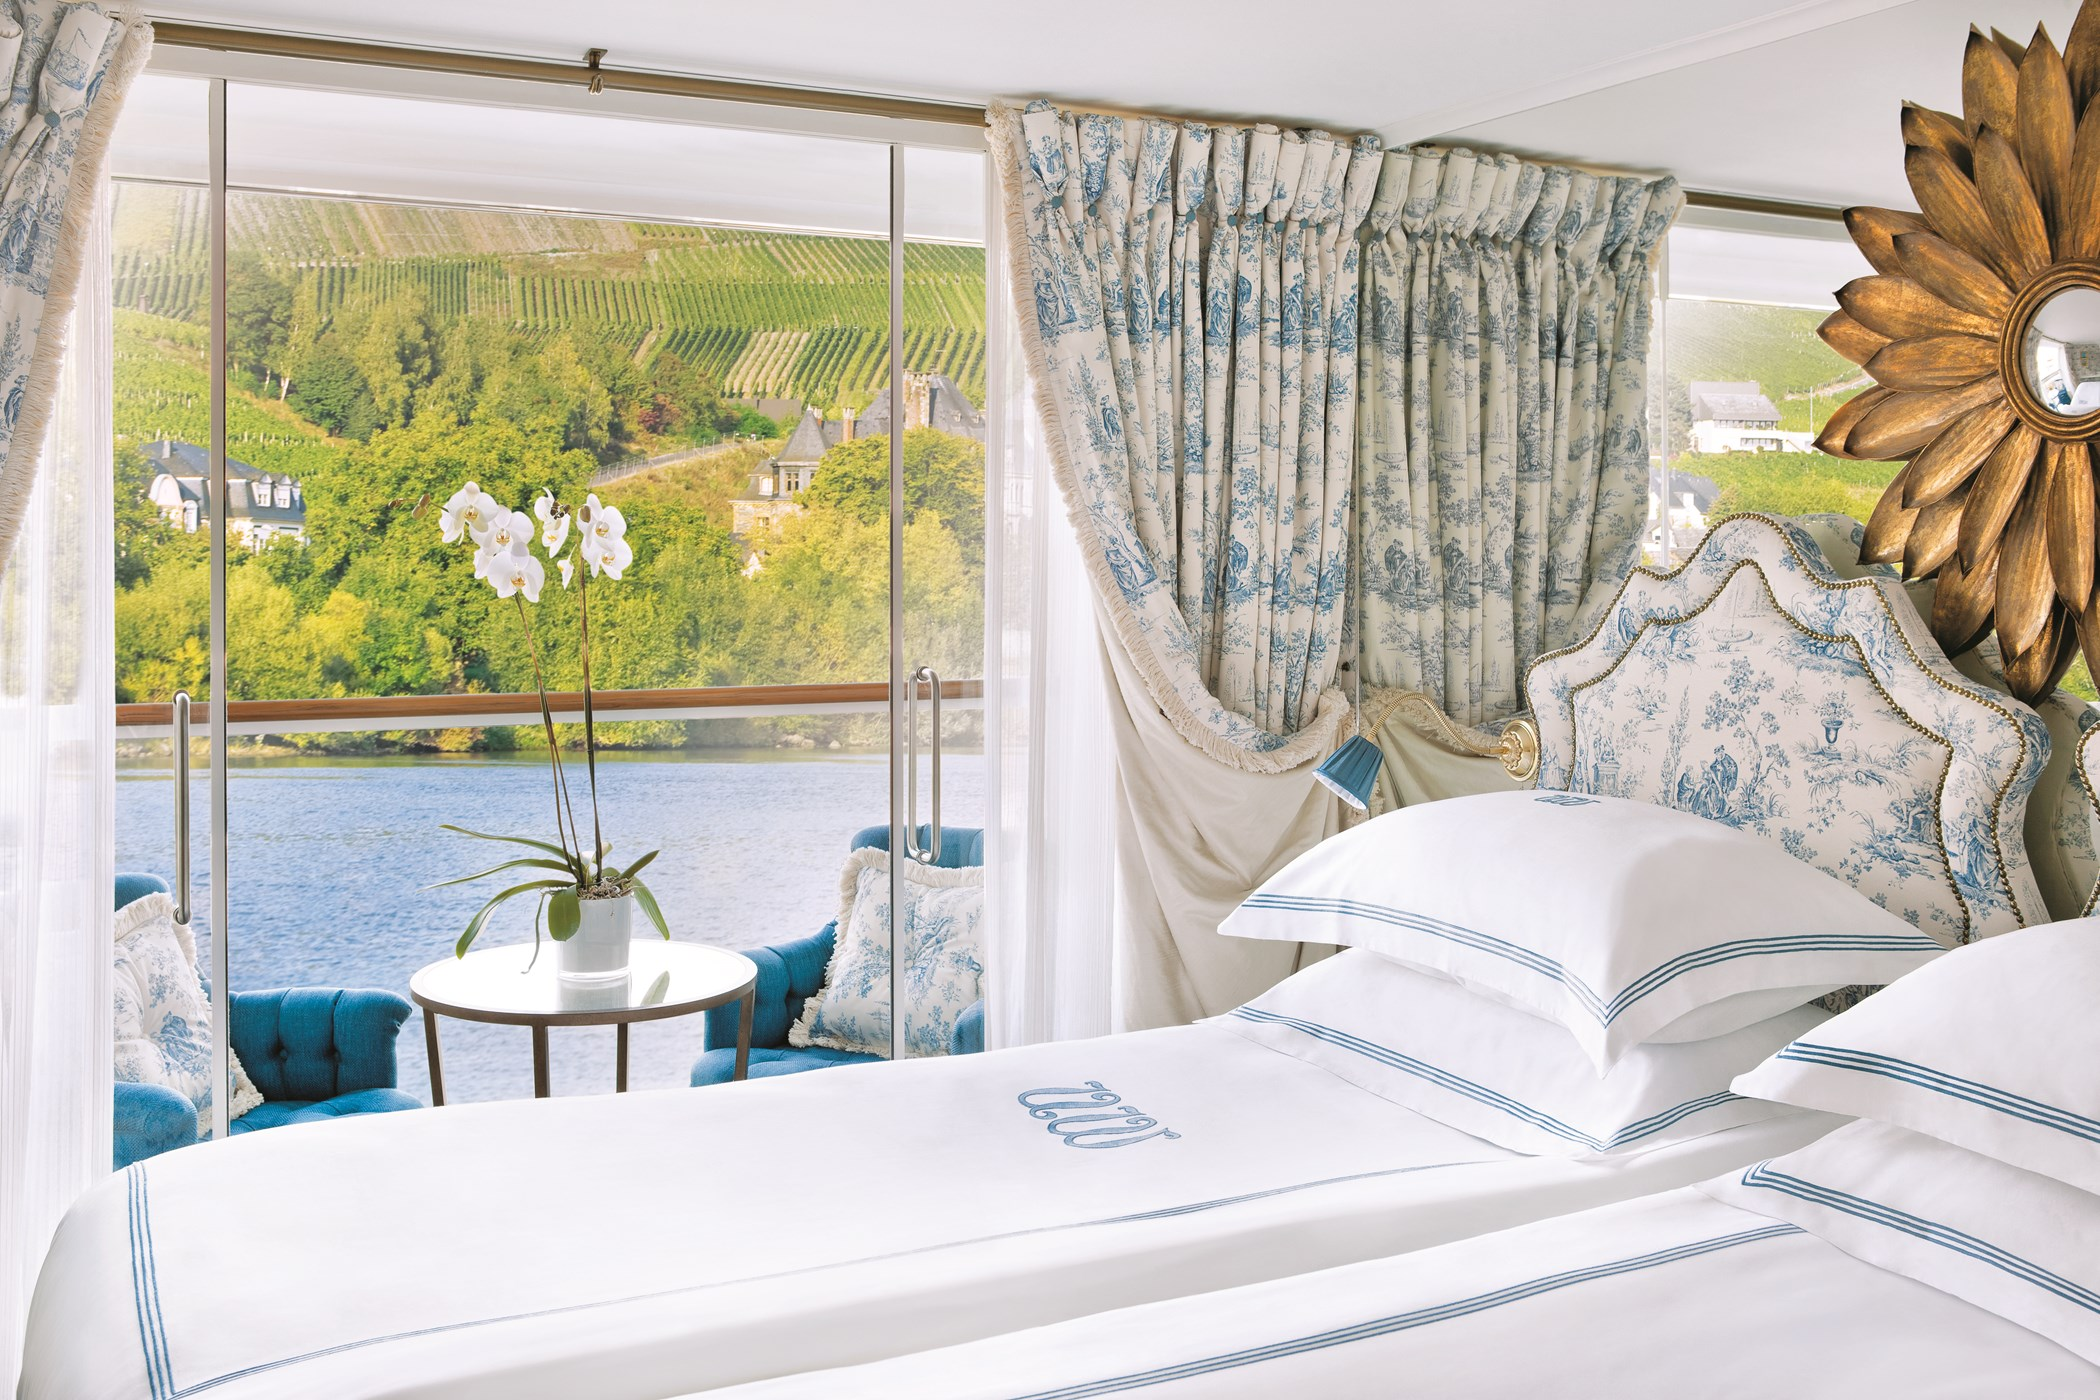 UNIWORLD Boutique River Cruises SS Antoinette Accommodation Stateroom Category 1.jpg